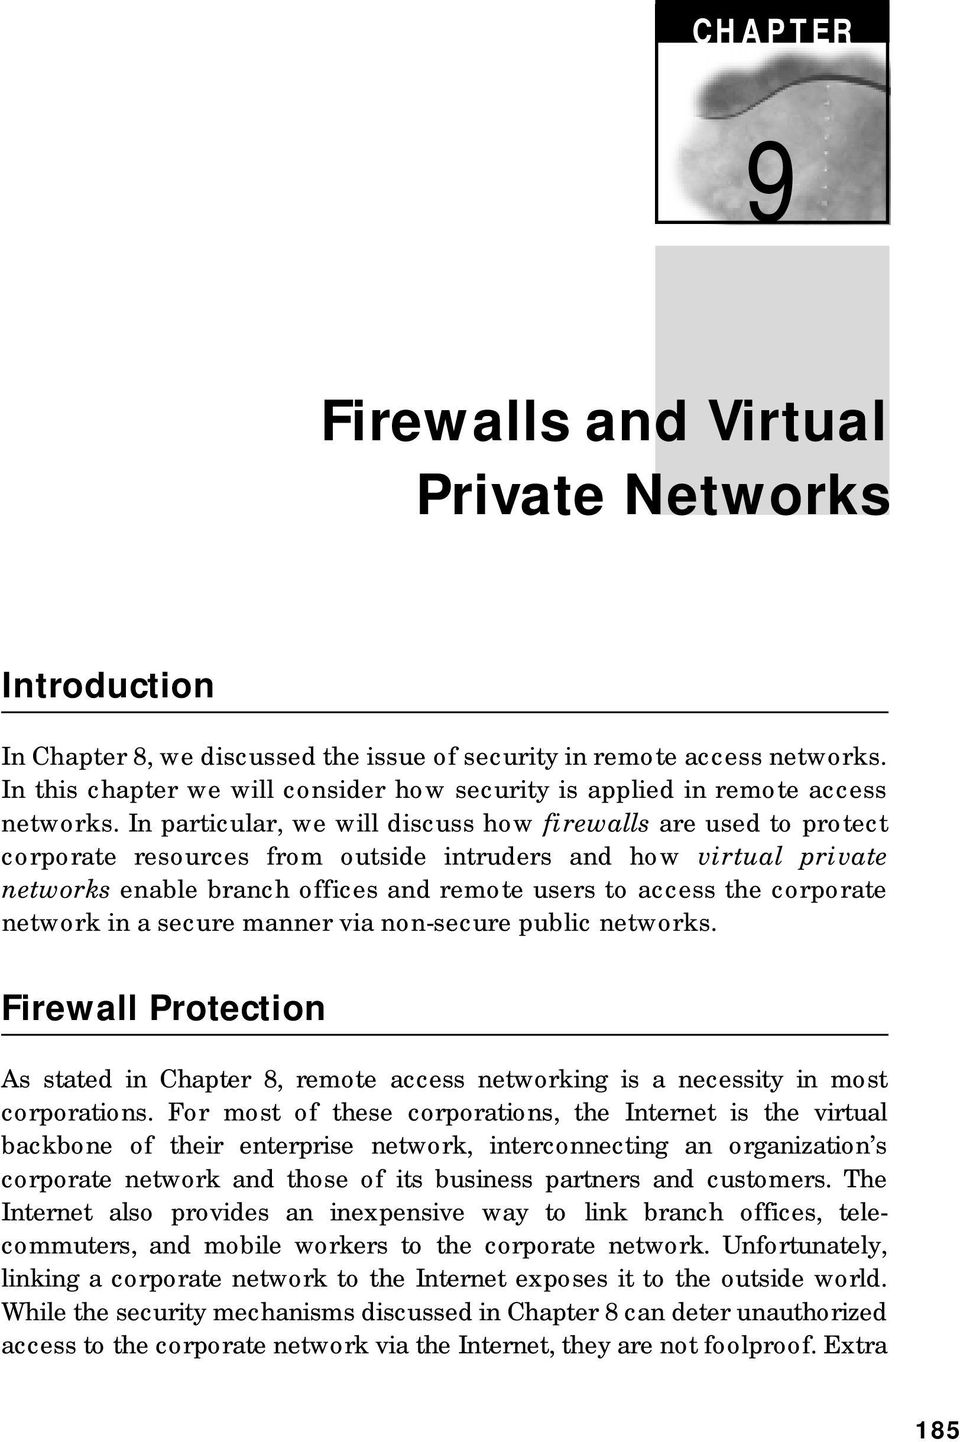 In particular, we will discuss how firewalls are used to protect corporate resources from outside intruders and how virtual private networks enable branch offices and remote users to access the